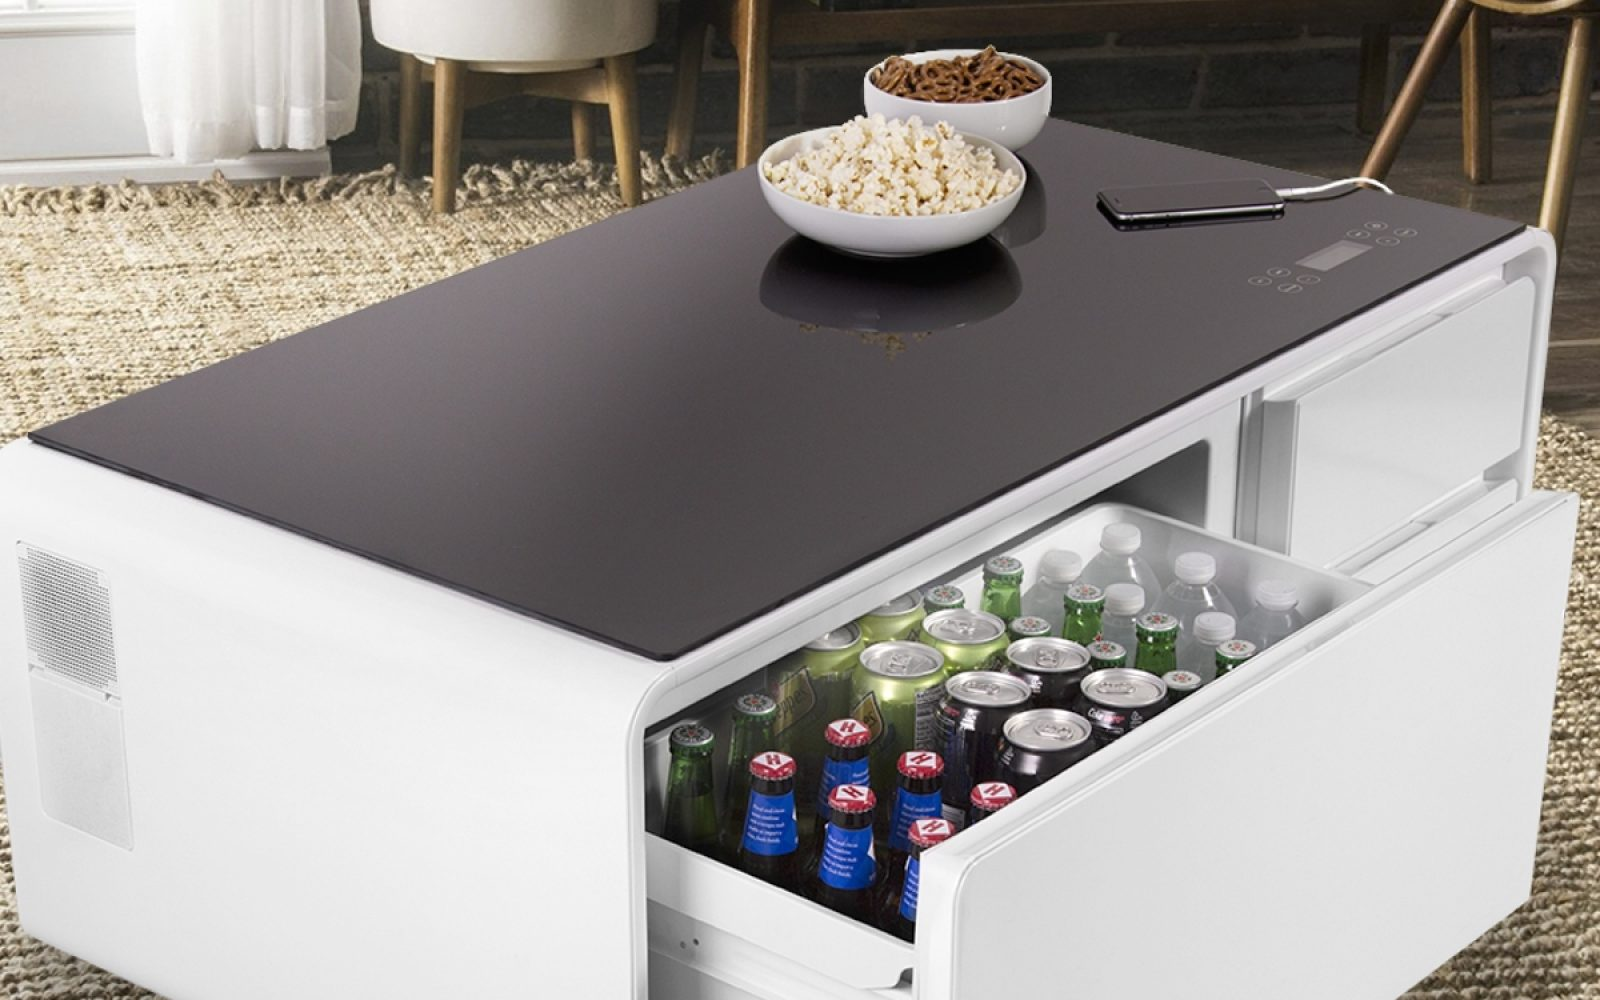 Refrigerator Coffee Table.Sobro Is The Cooler Coffee Table That Features An Integrated